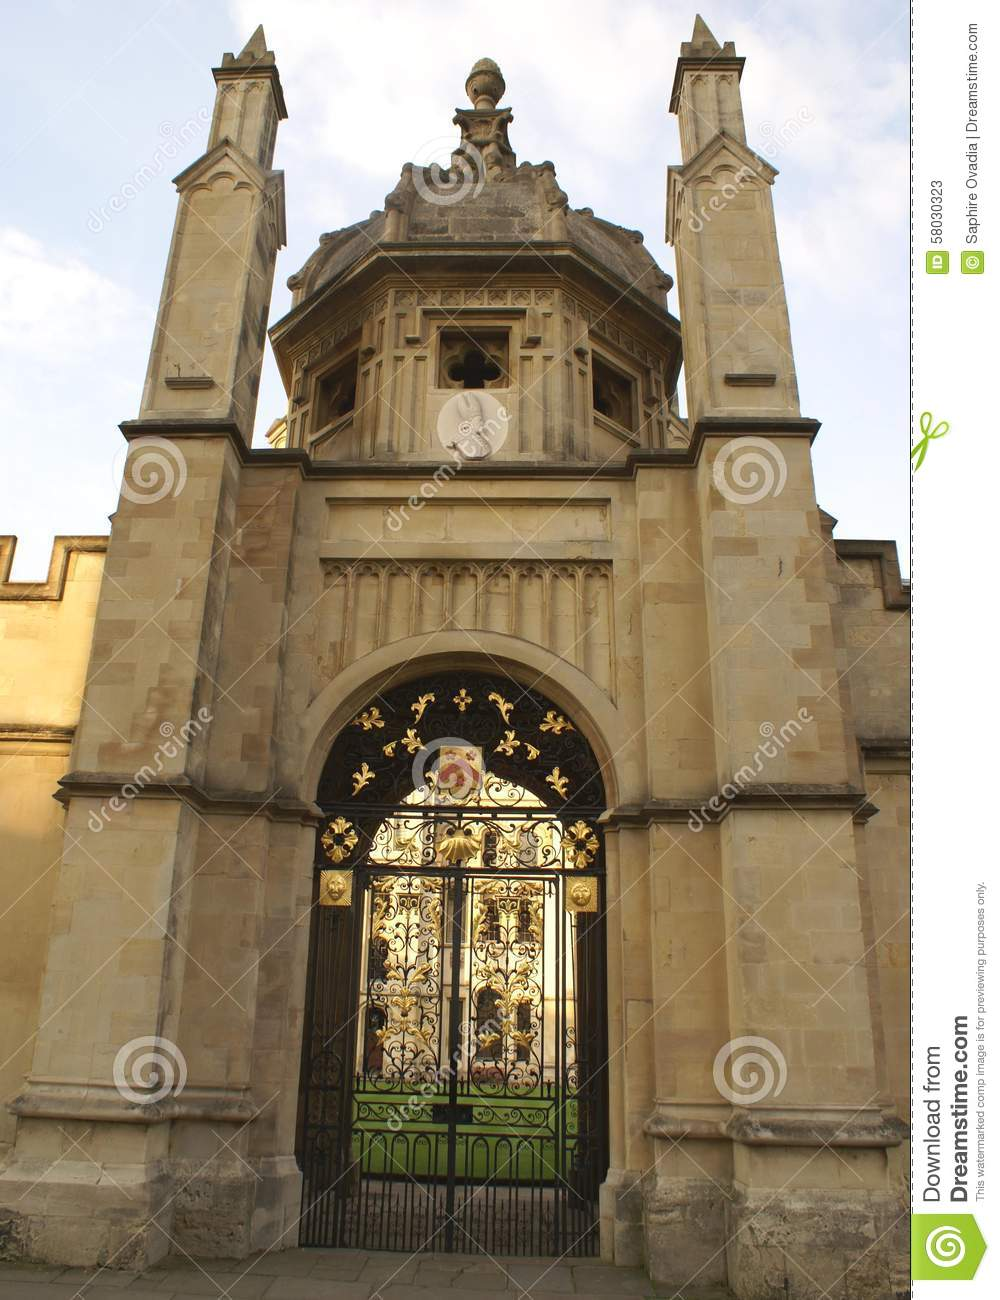 Ornate wrought iron gate and door royalty free stock image